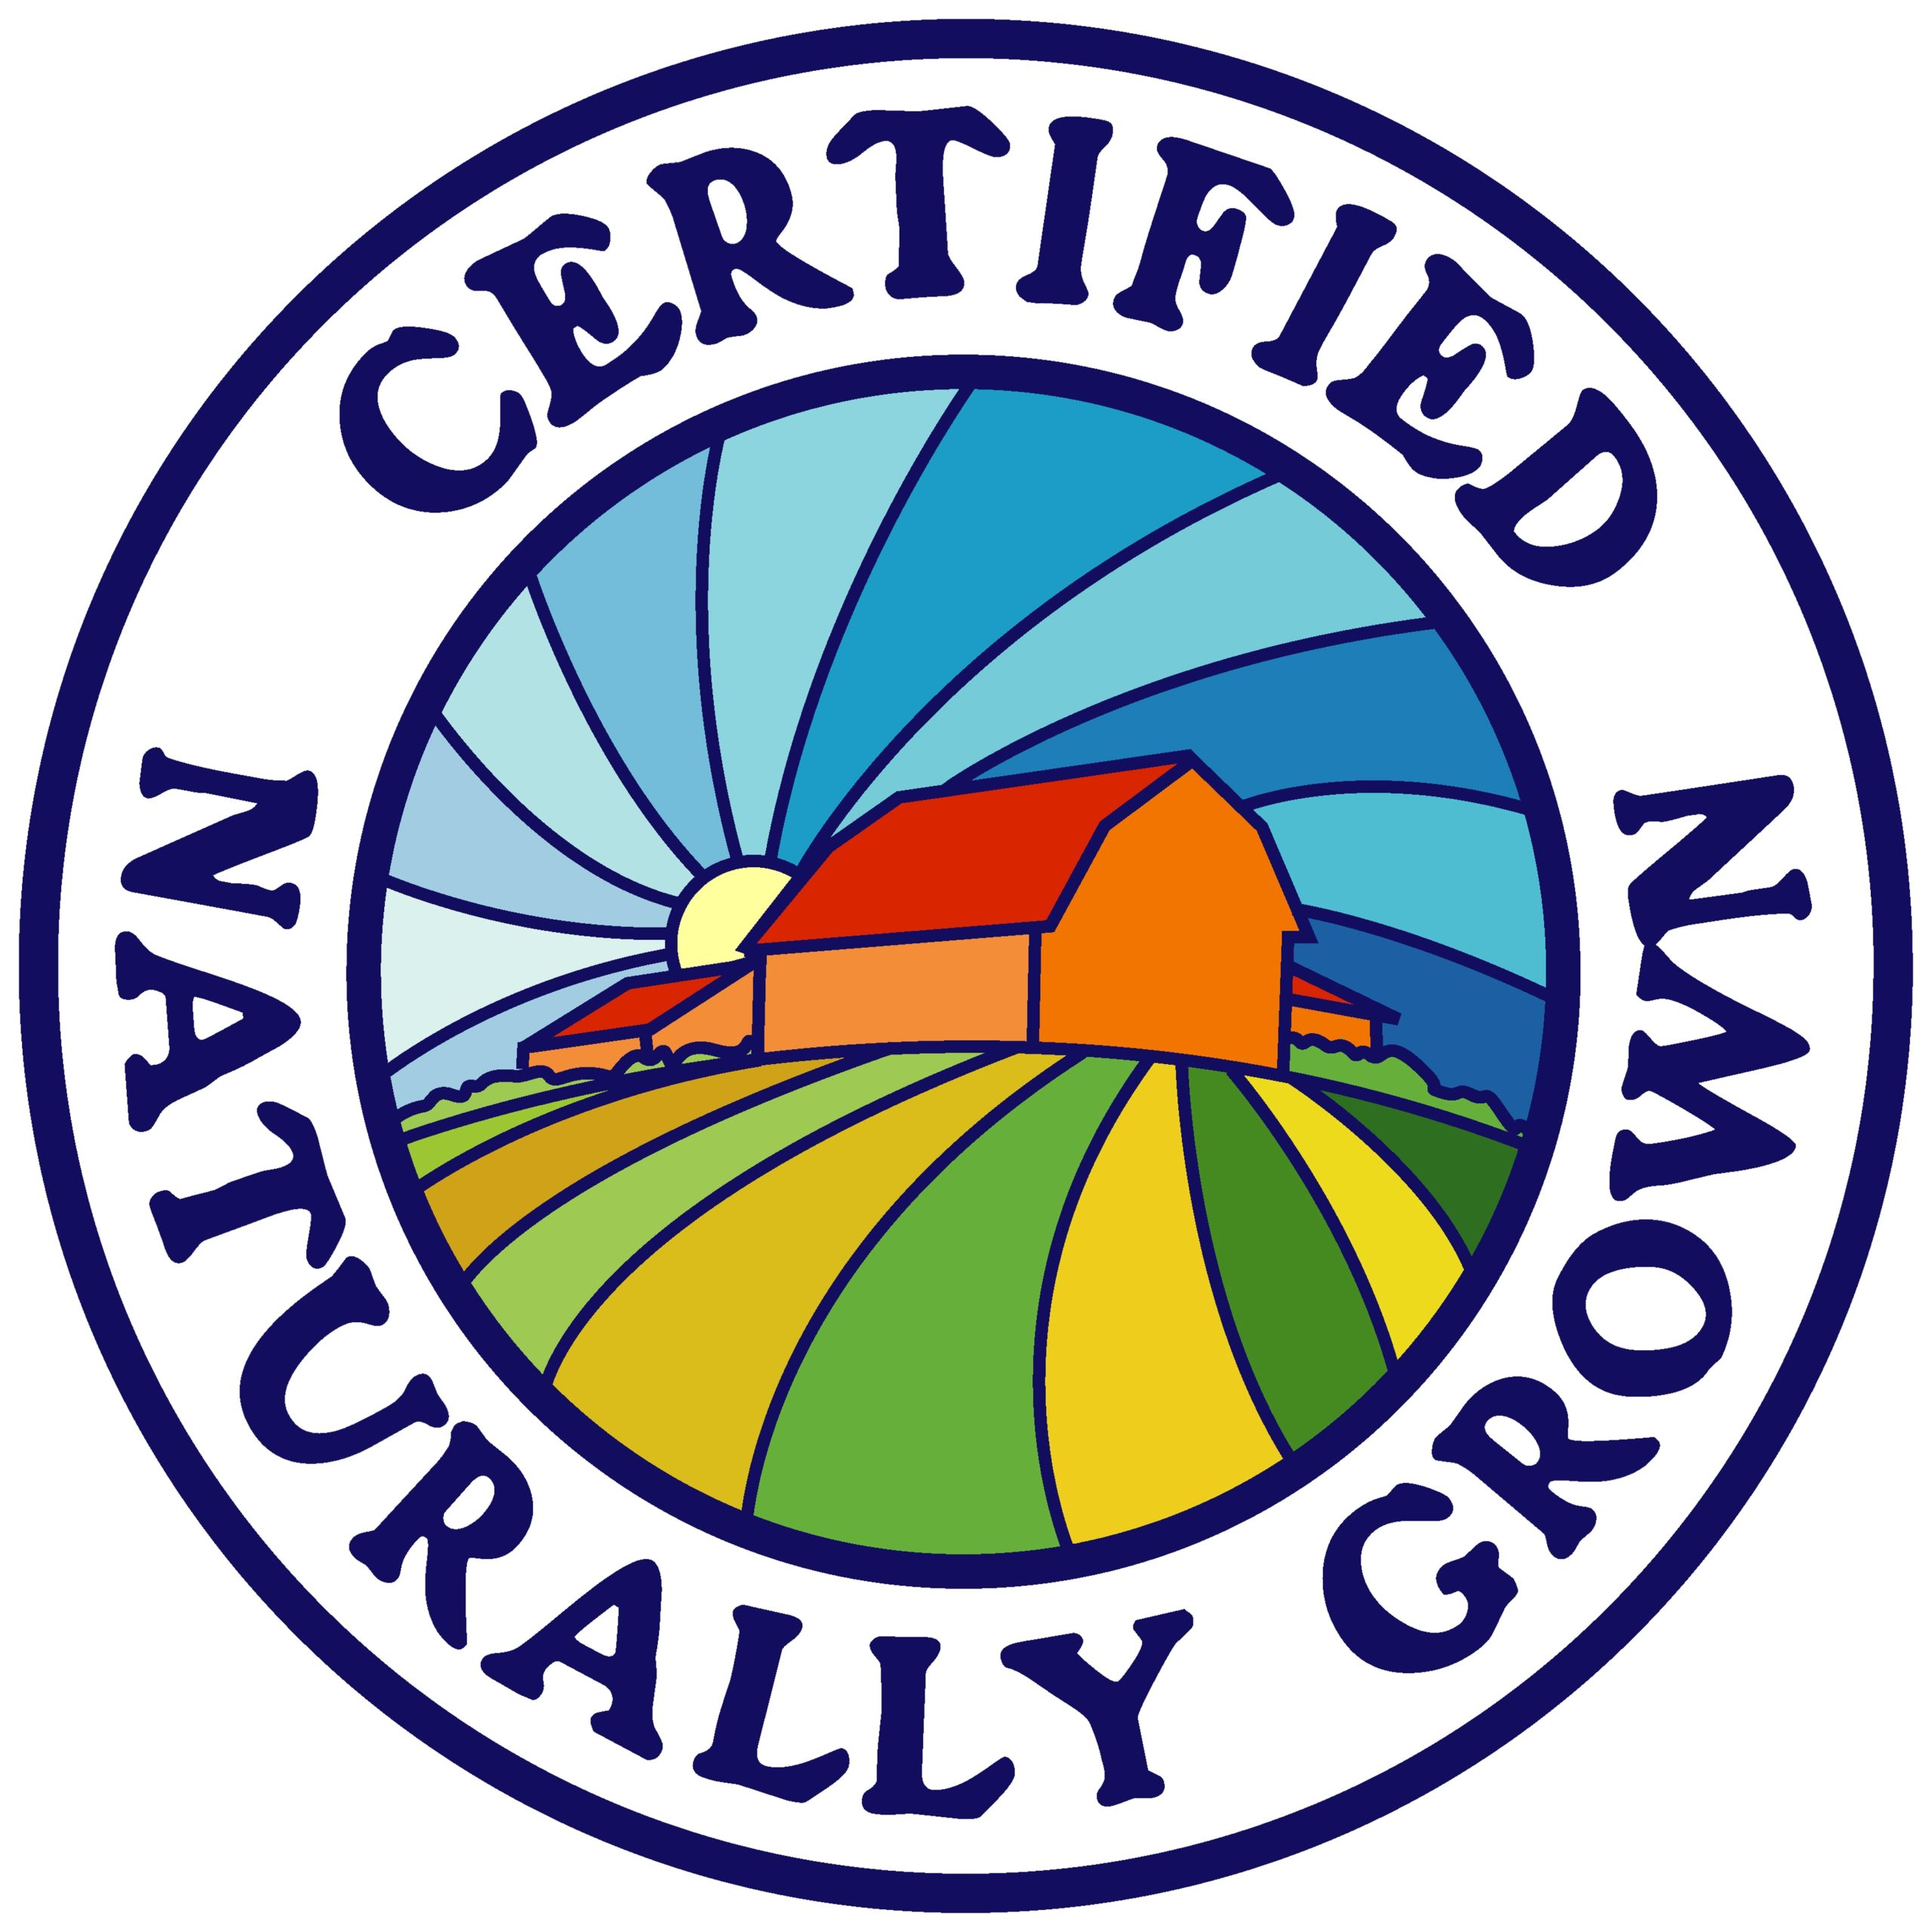 Certified Naturally Grown Certification